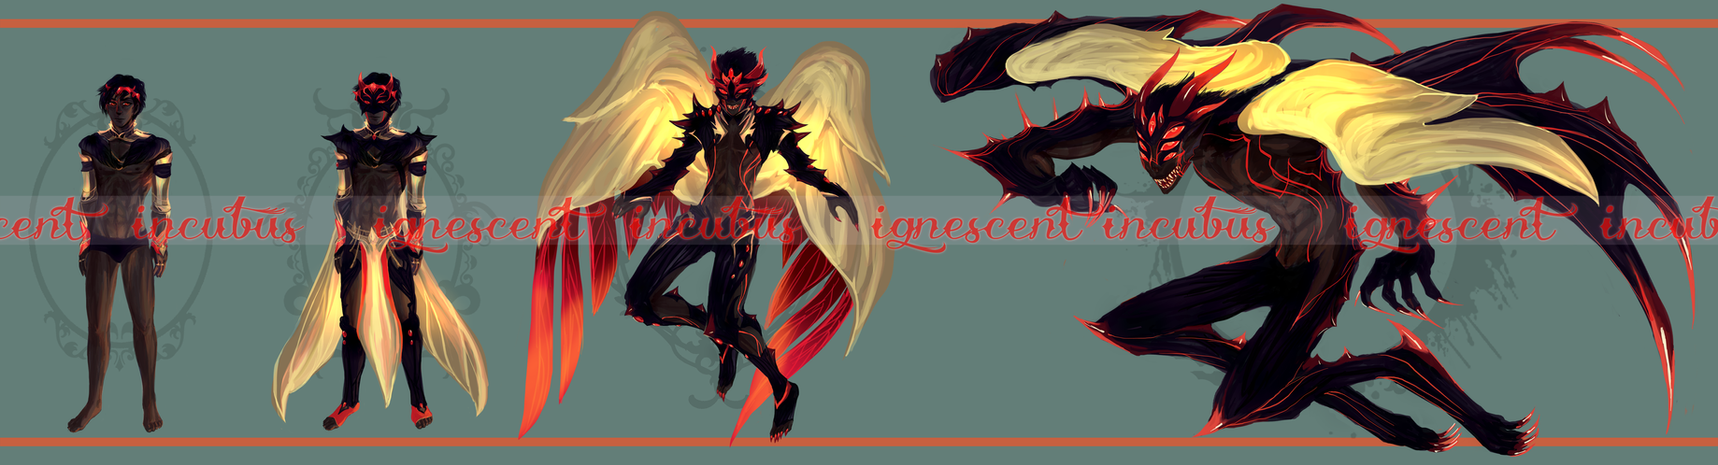 IGNESCENT INCUBUS adopt [CLOSED] by ensoul